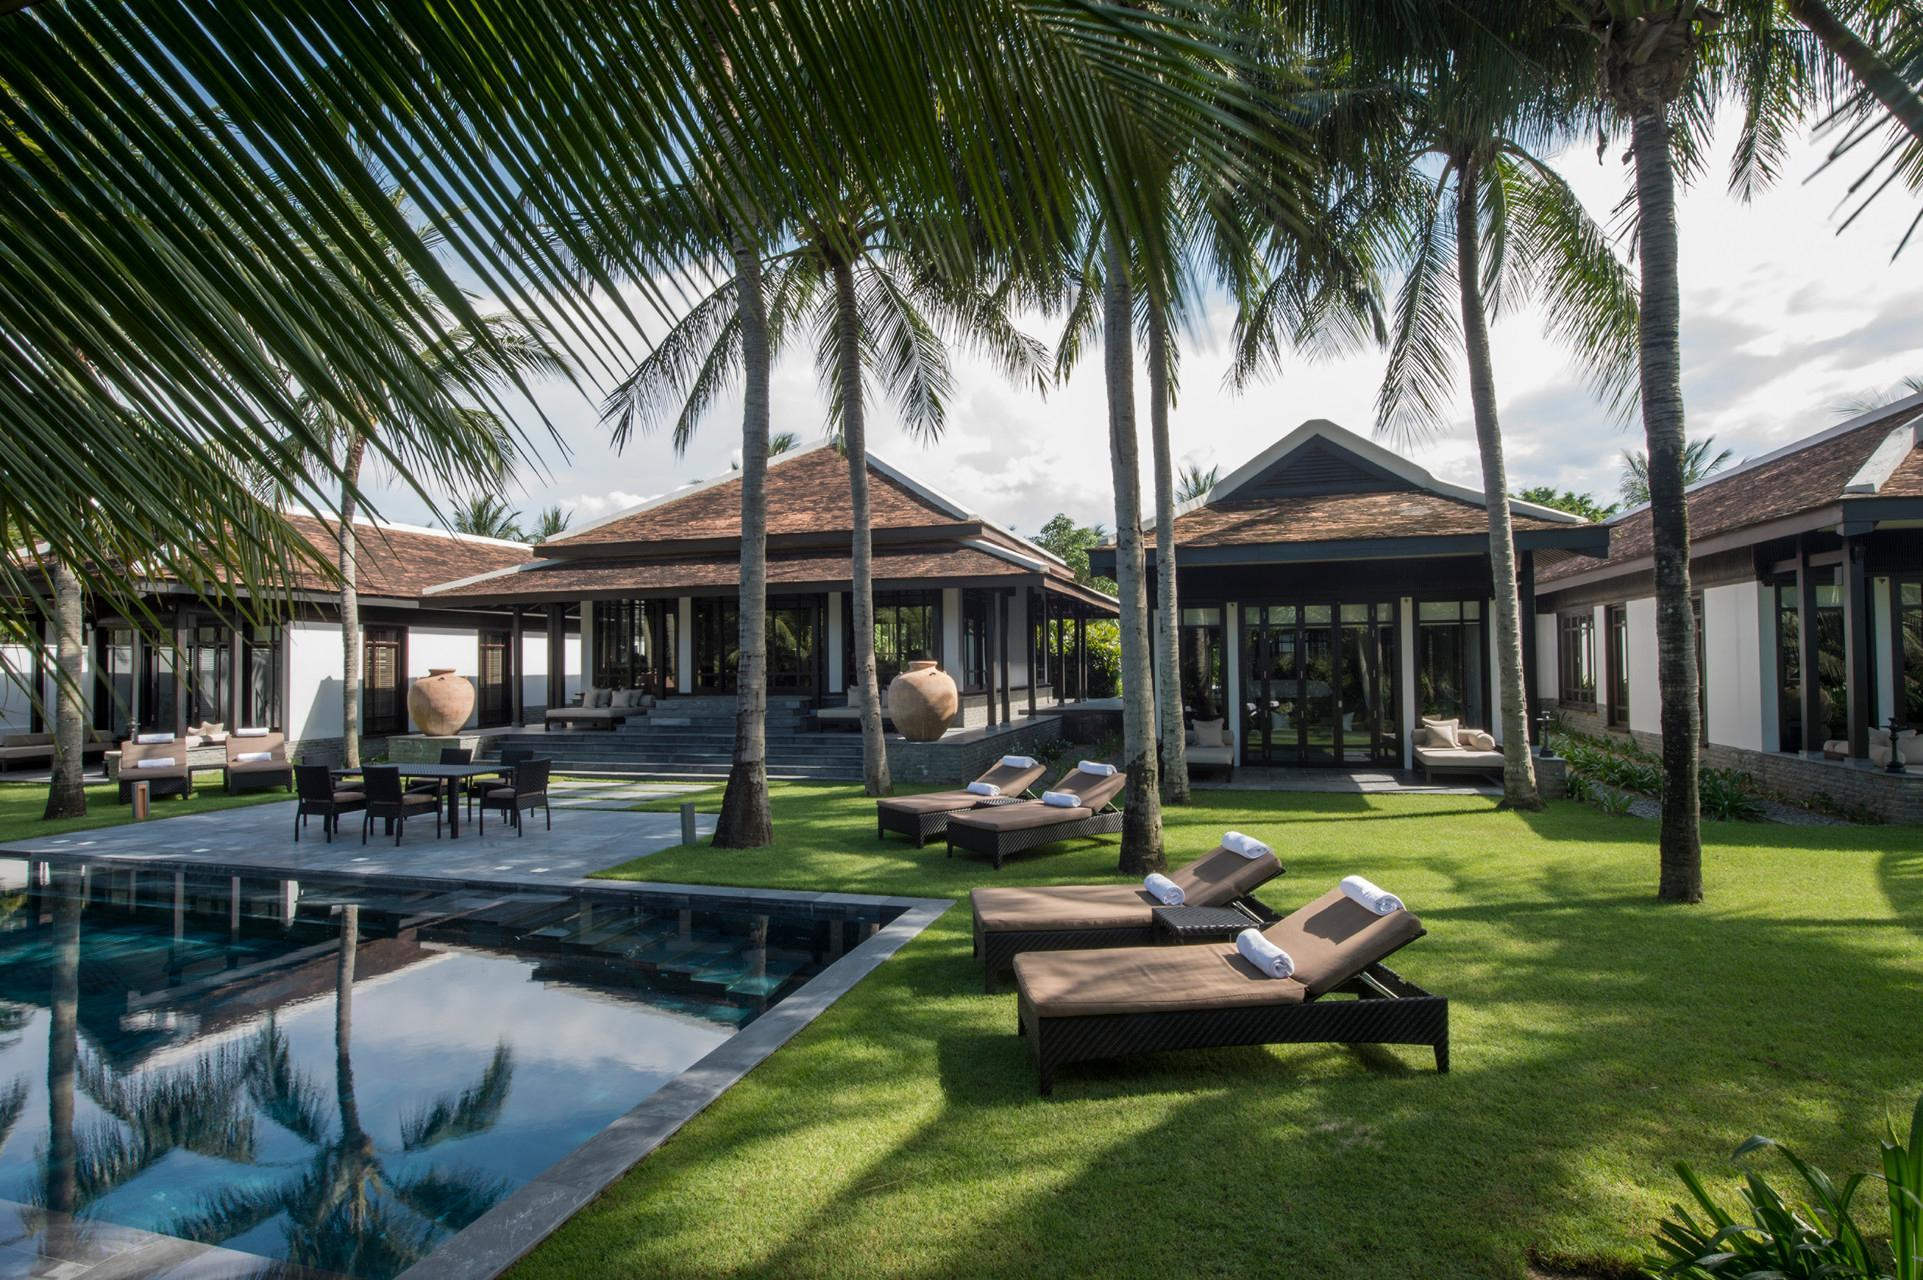 Four Seasons Resort The Nam Hai Hoi An Vietnam | Hoi An 2020 ...